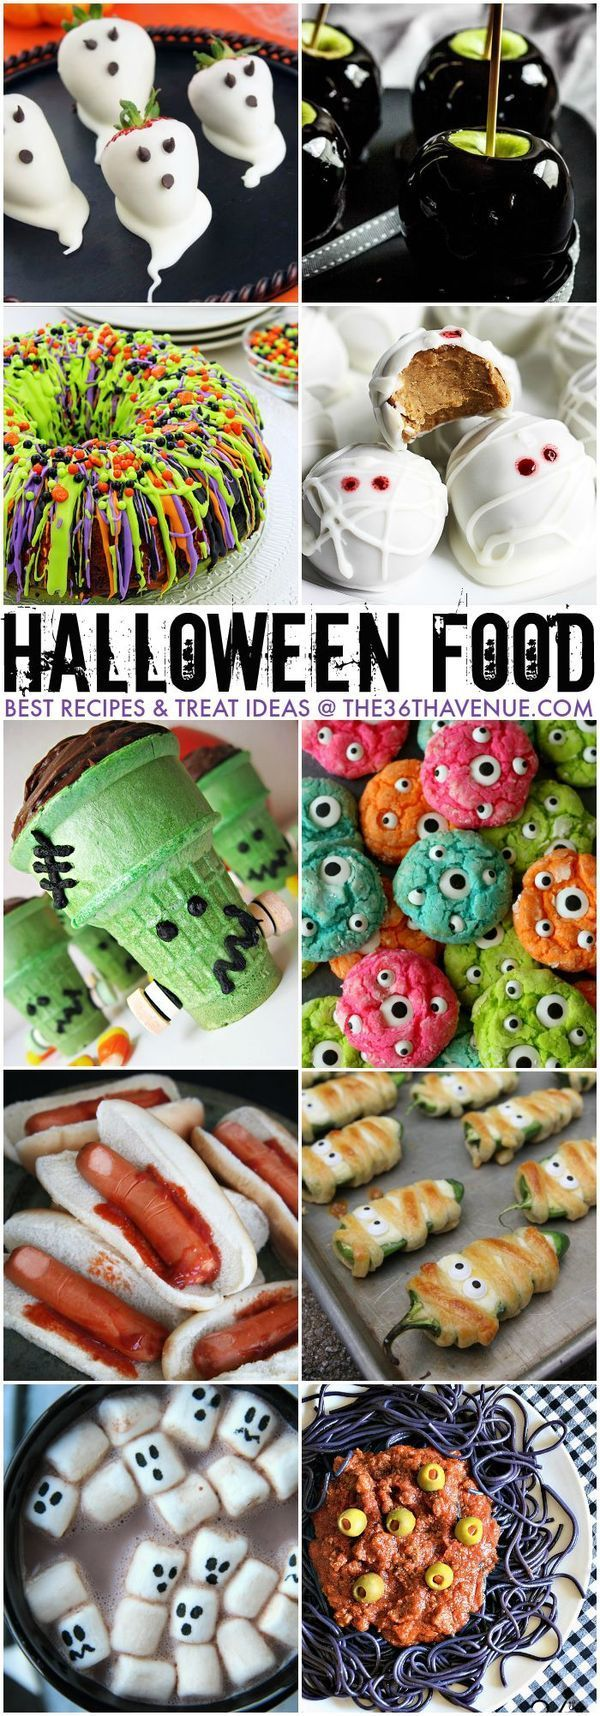 Halloween Treats and Recipes at the36thavenue.com These are AWESOME! Perfect for a party!